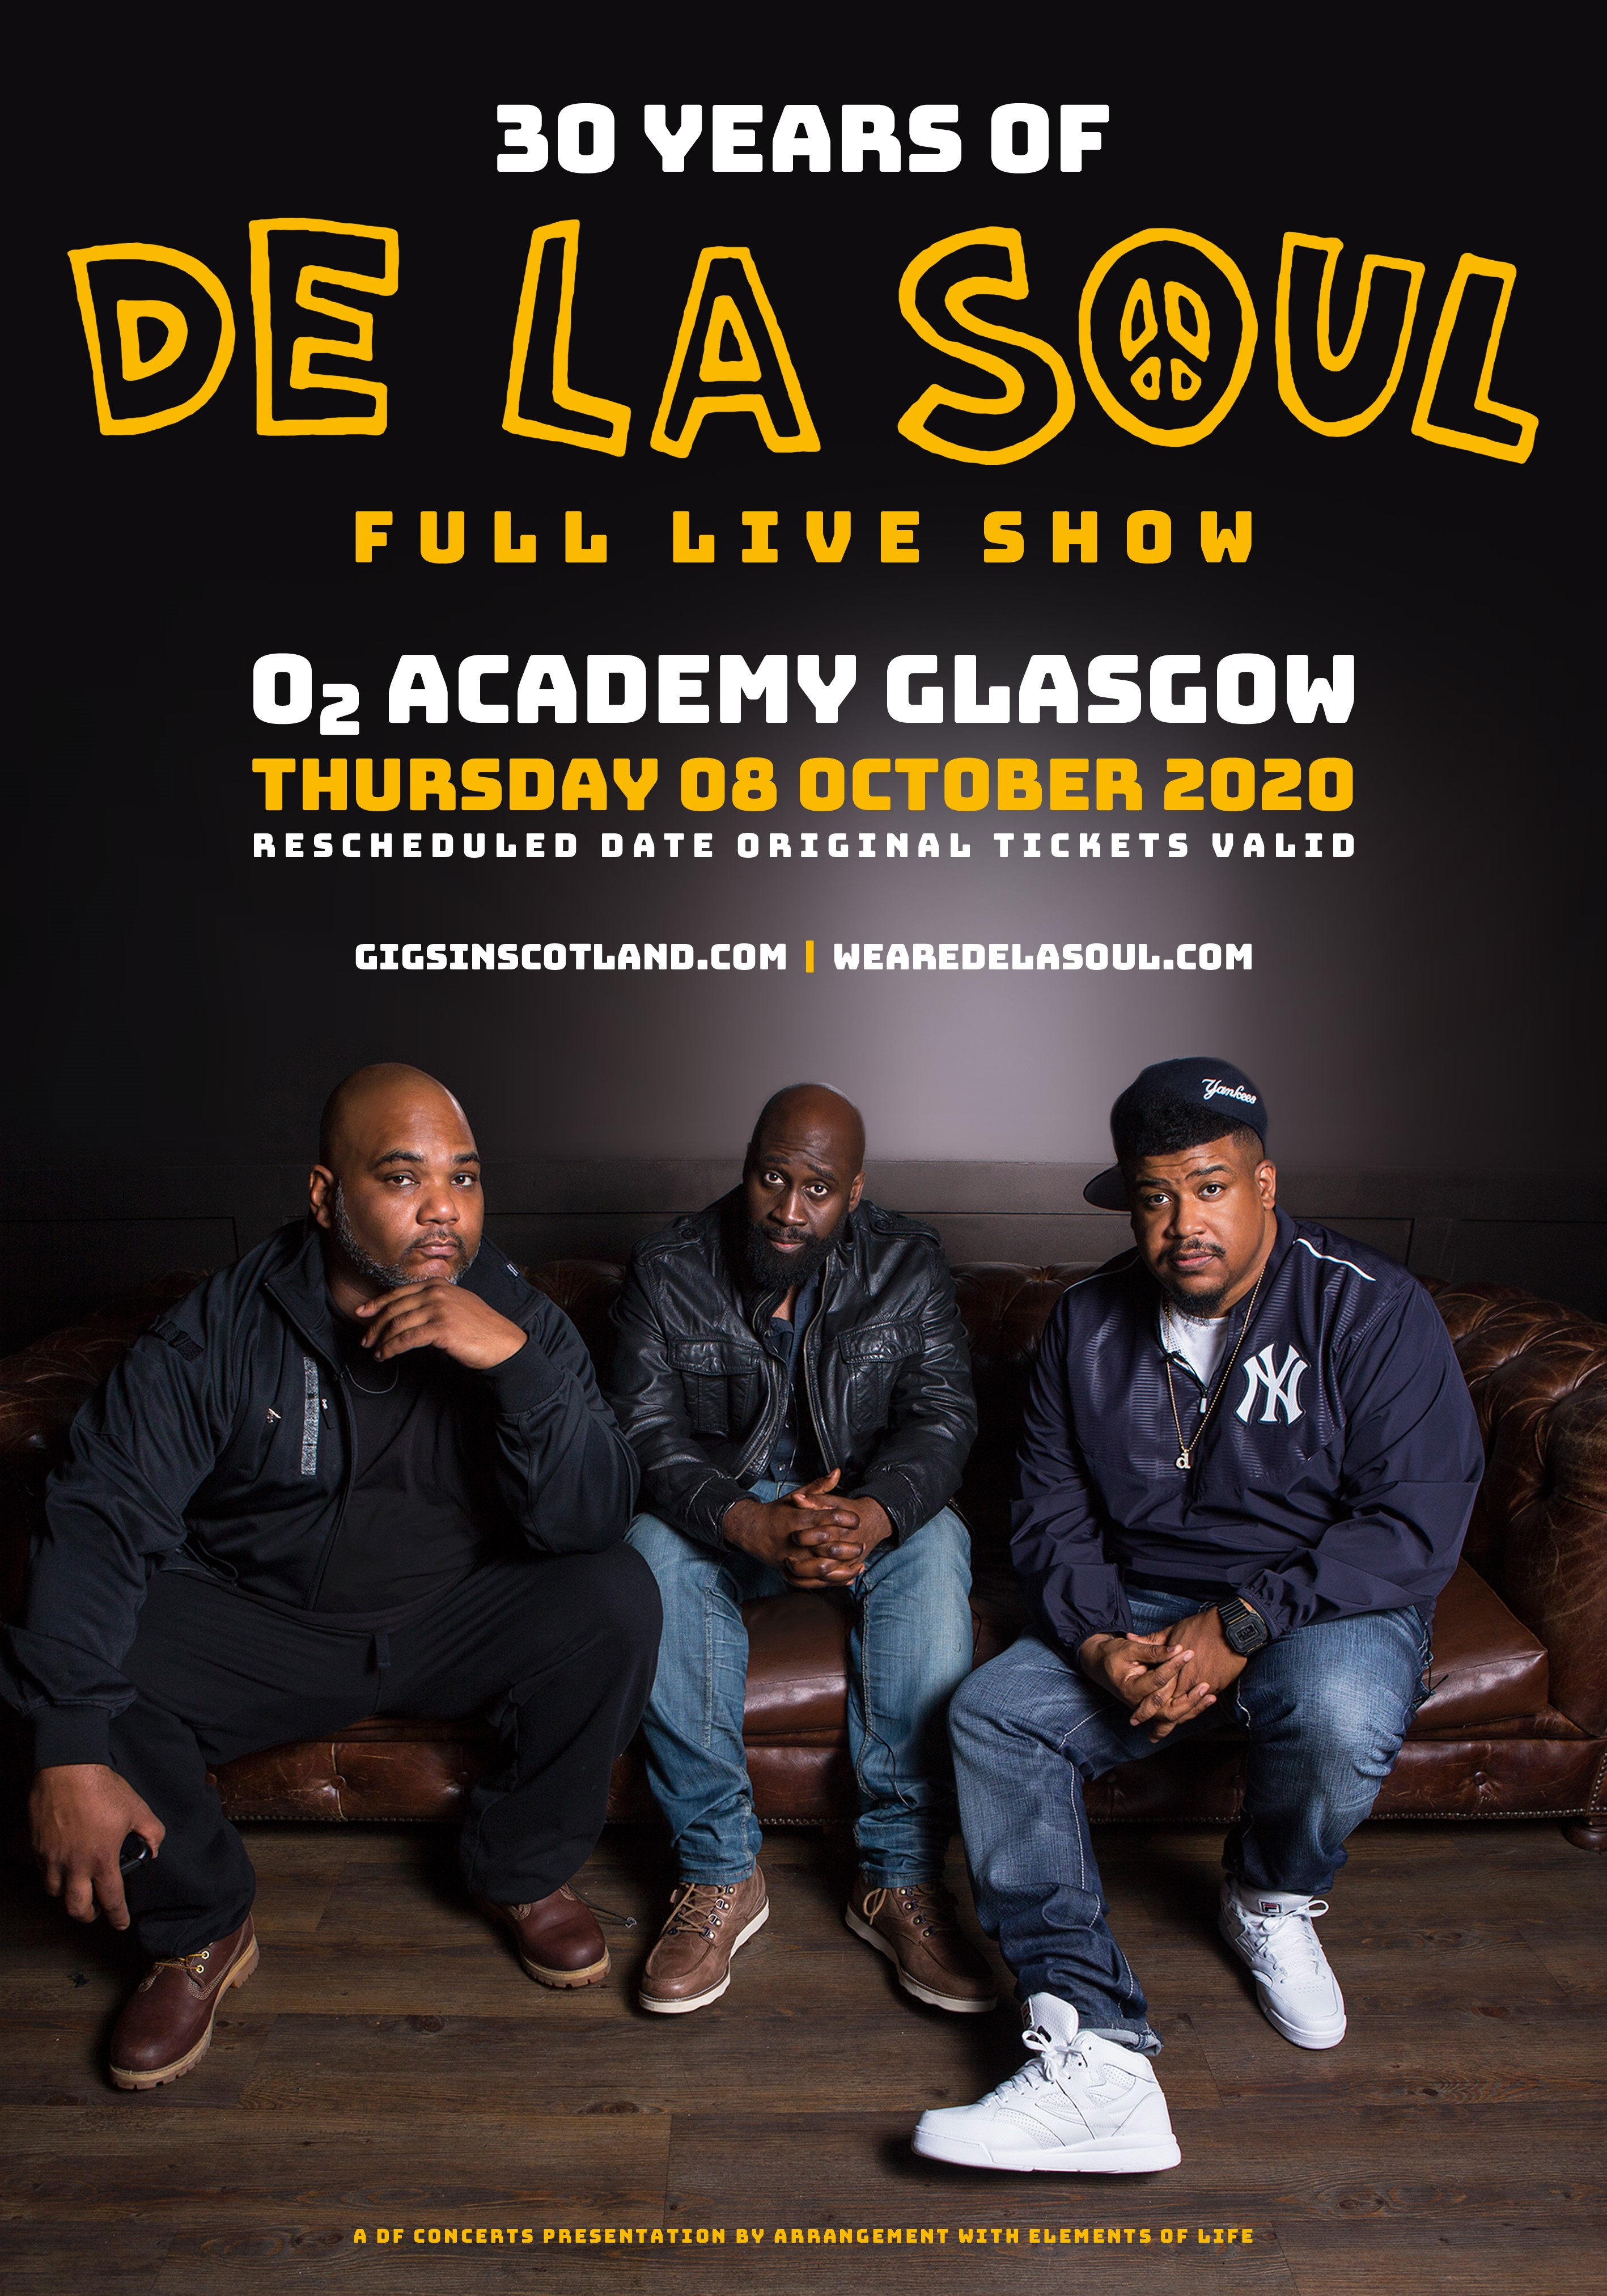 De La Soul Celebrating 30 Years at O2 Academy Glasgow